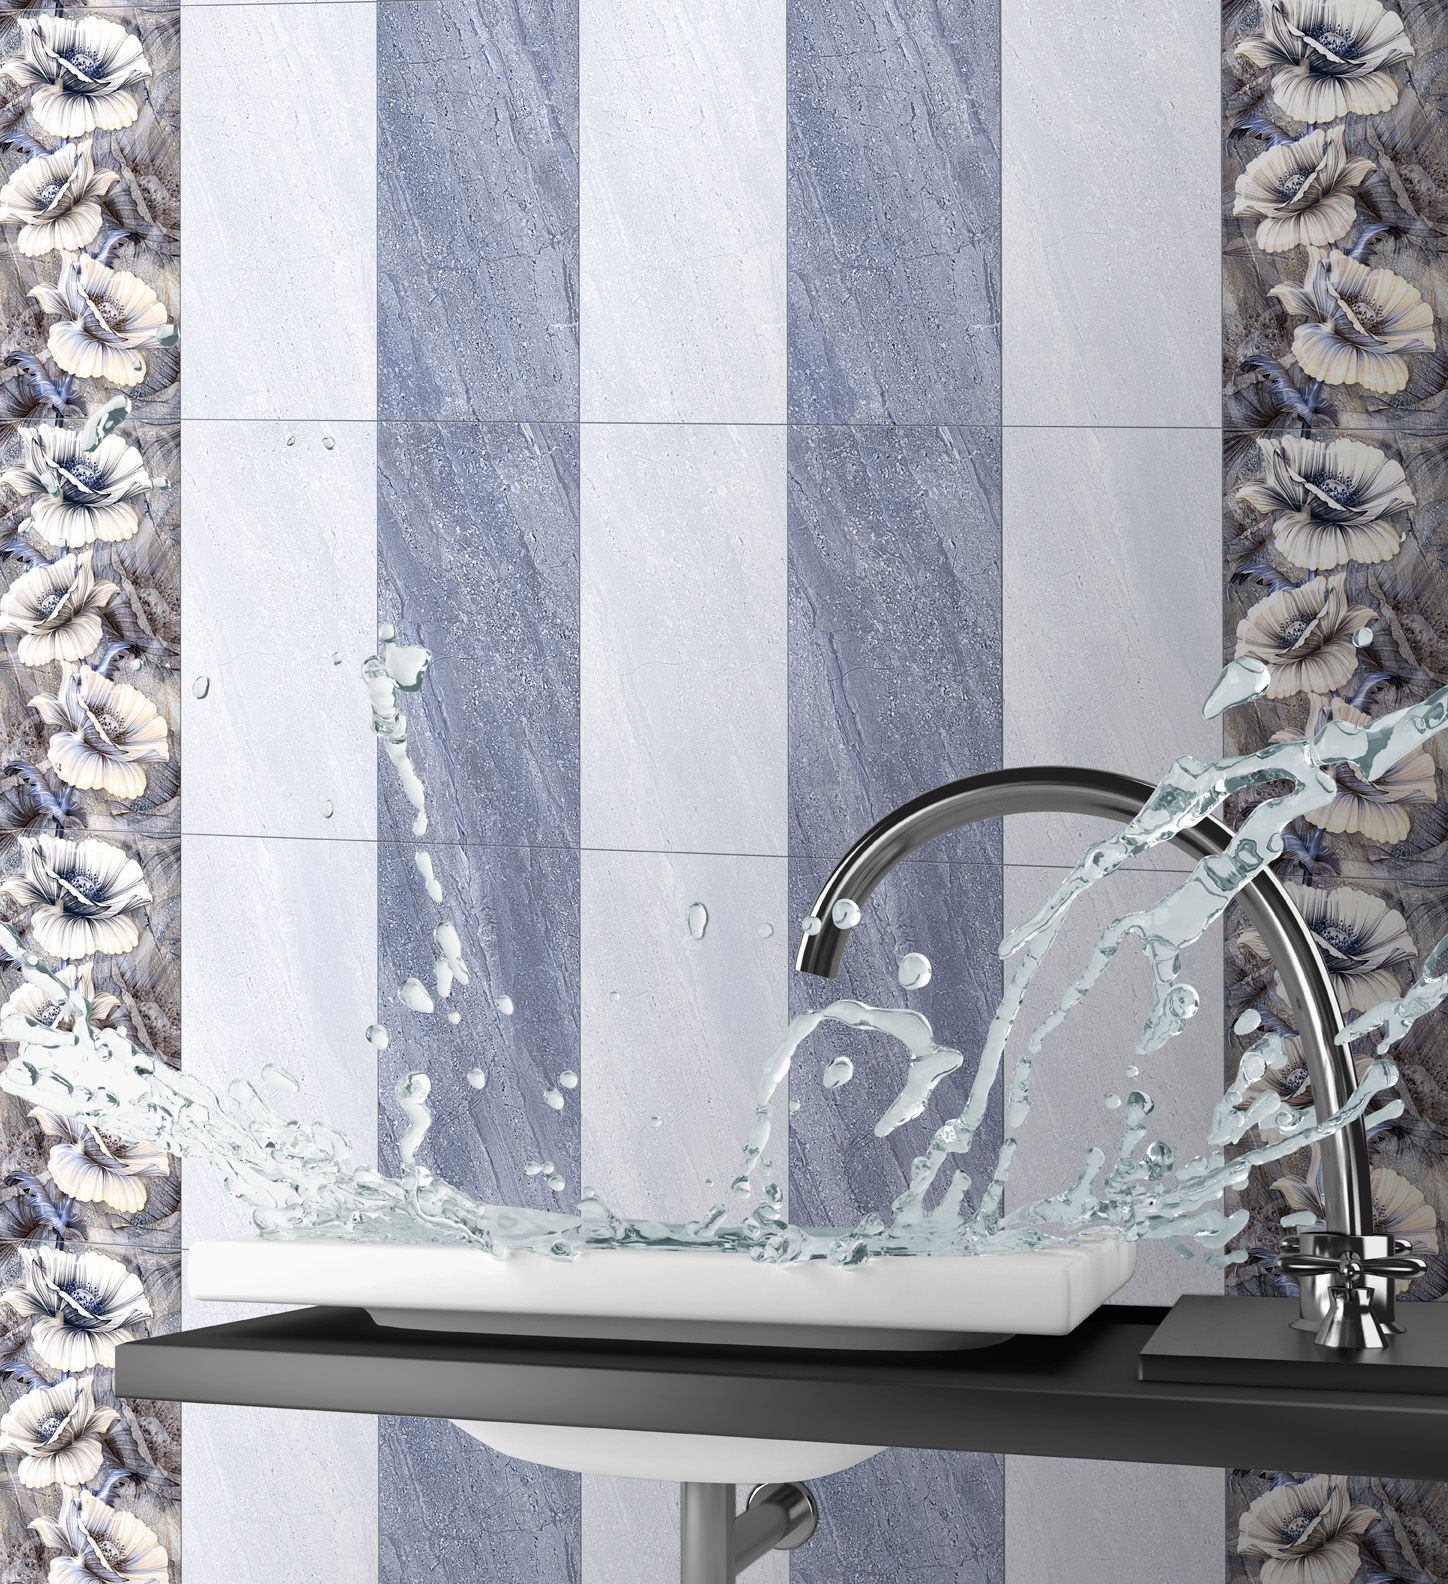 Charming Glossy Digital Wall Tiles For Bathroom In 300*600 Size.   See More Digital Part 6